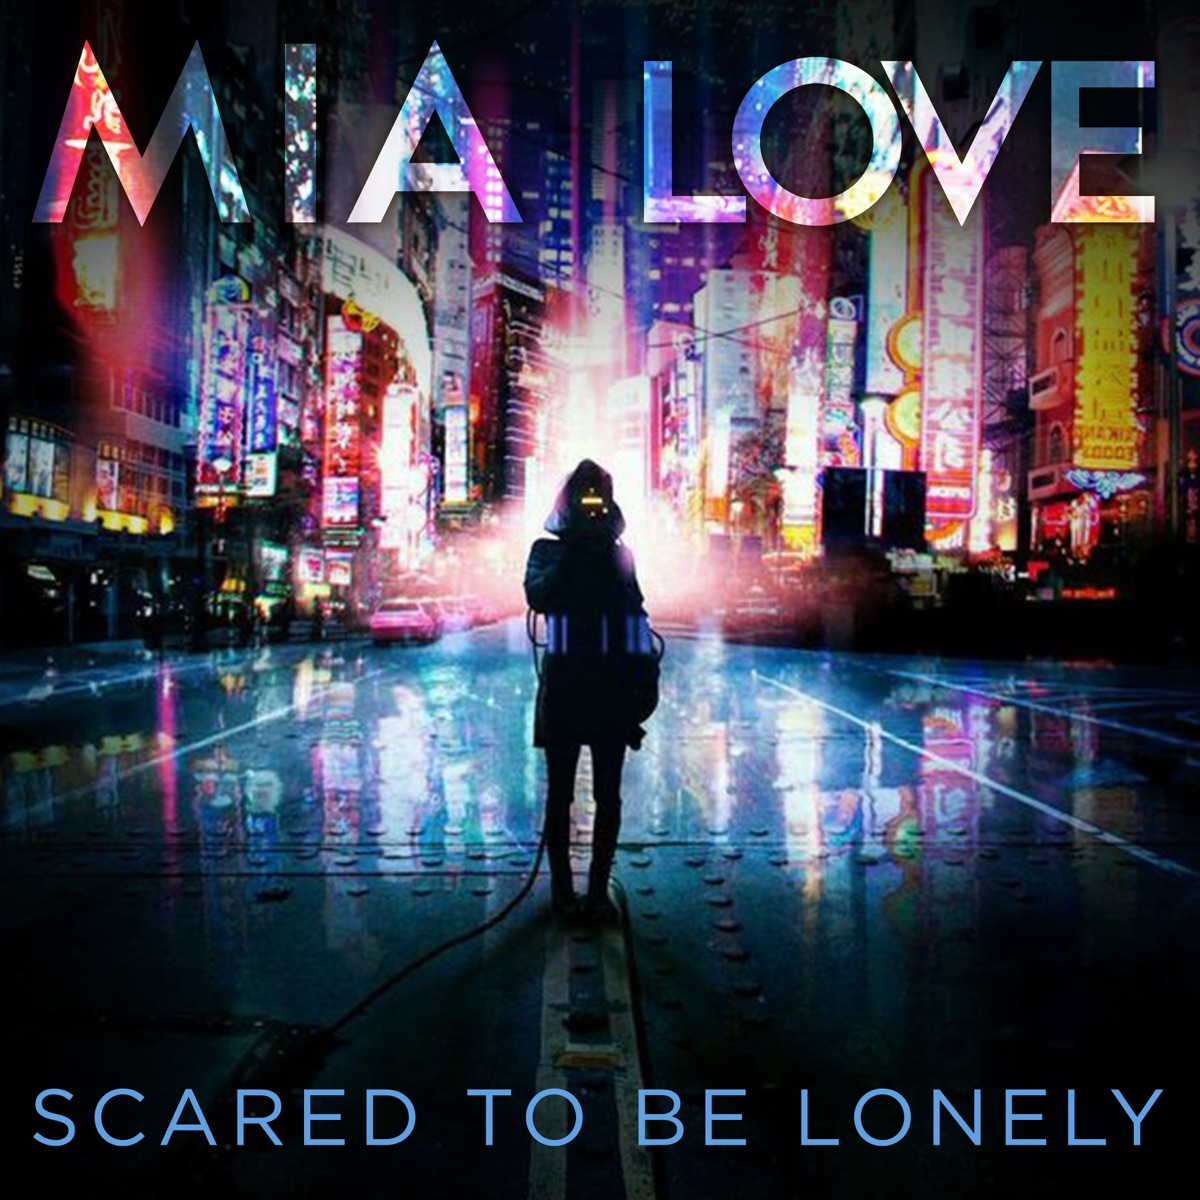 Scared To Be Lonely - Single Mia Love CD cover